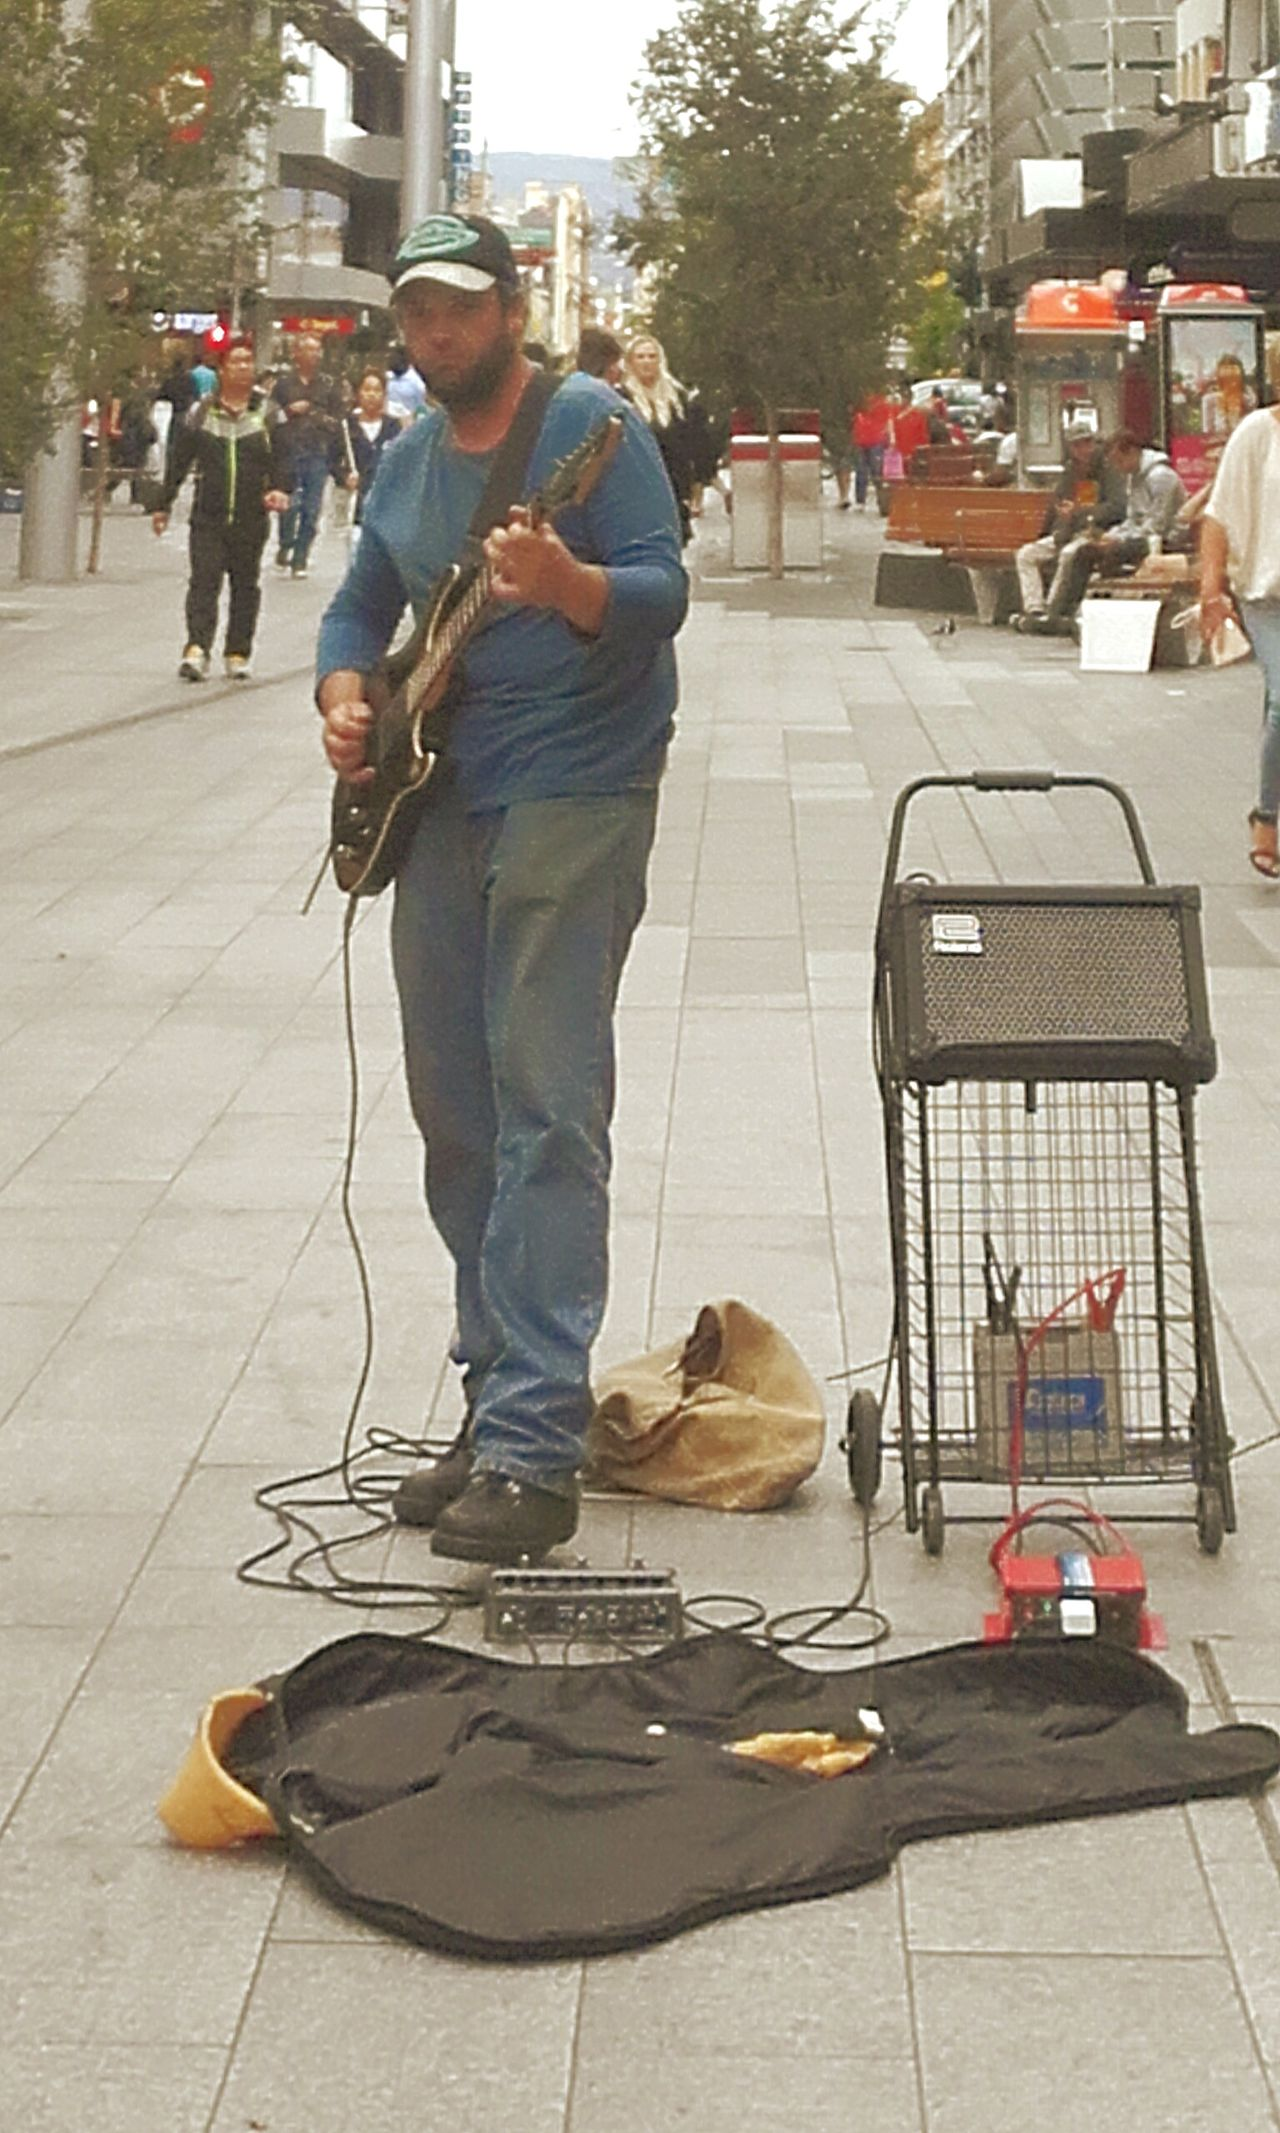 Streetphotography Street Photography Guitar Street Musicians Musician Busker Rundle Mall Rundlemall Buskers Street Musician Streetmusician Streetmusicians Streetmusic Street Muscians In The Mall Playing The Guitar Busking Accousticguitarist Street Music Music CityOfAdelaide City Life Street Life Street Accoustic Guitatist Adelaide